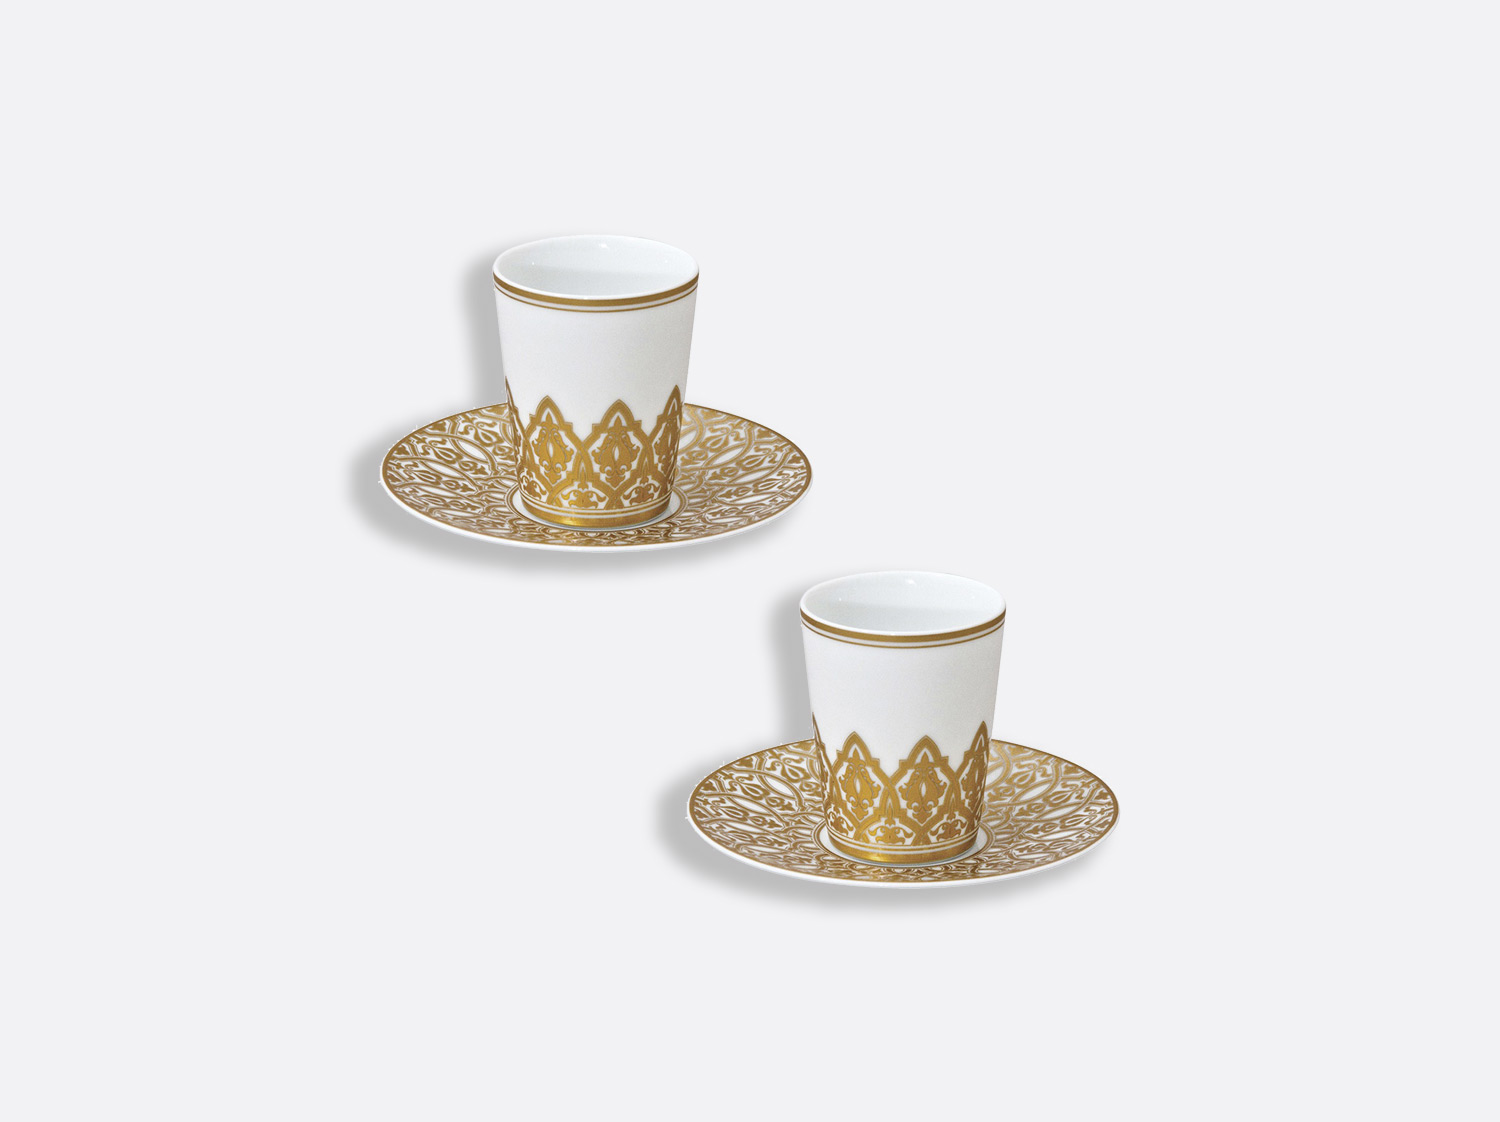 China Set of 2 handle-less espresso cups and saucers 2.4 oz of the collection Venise | Bernardaud